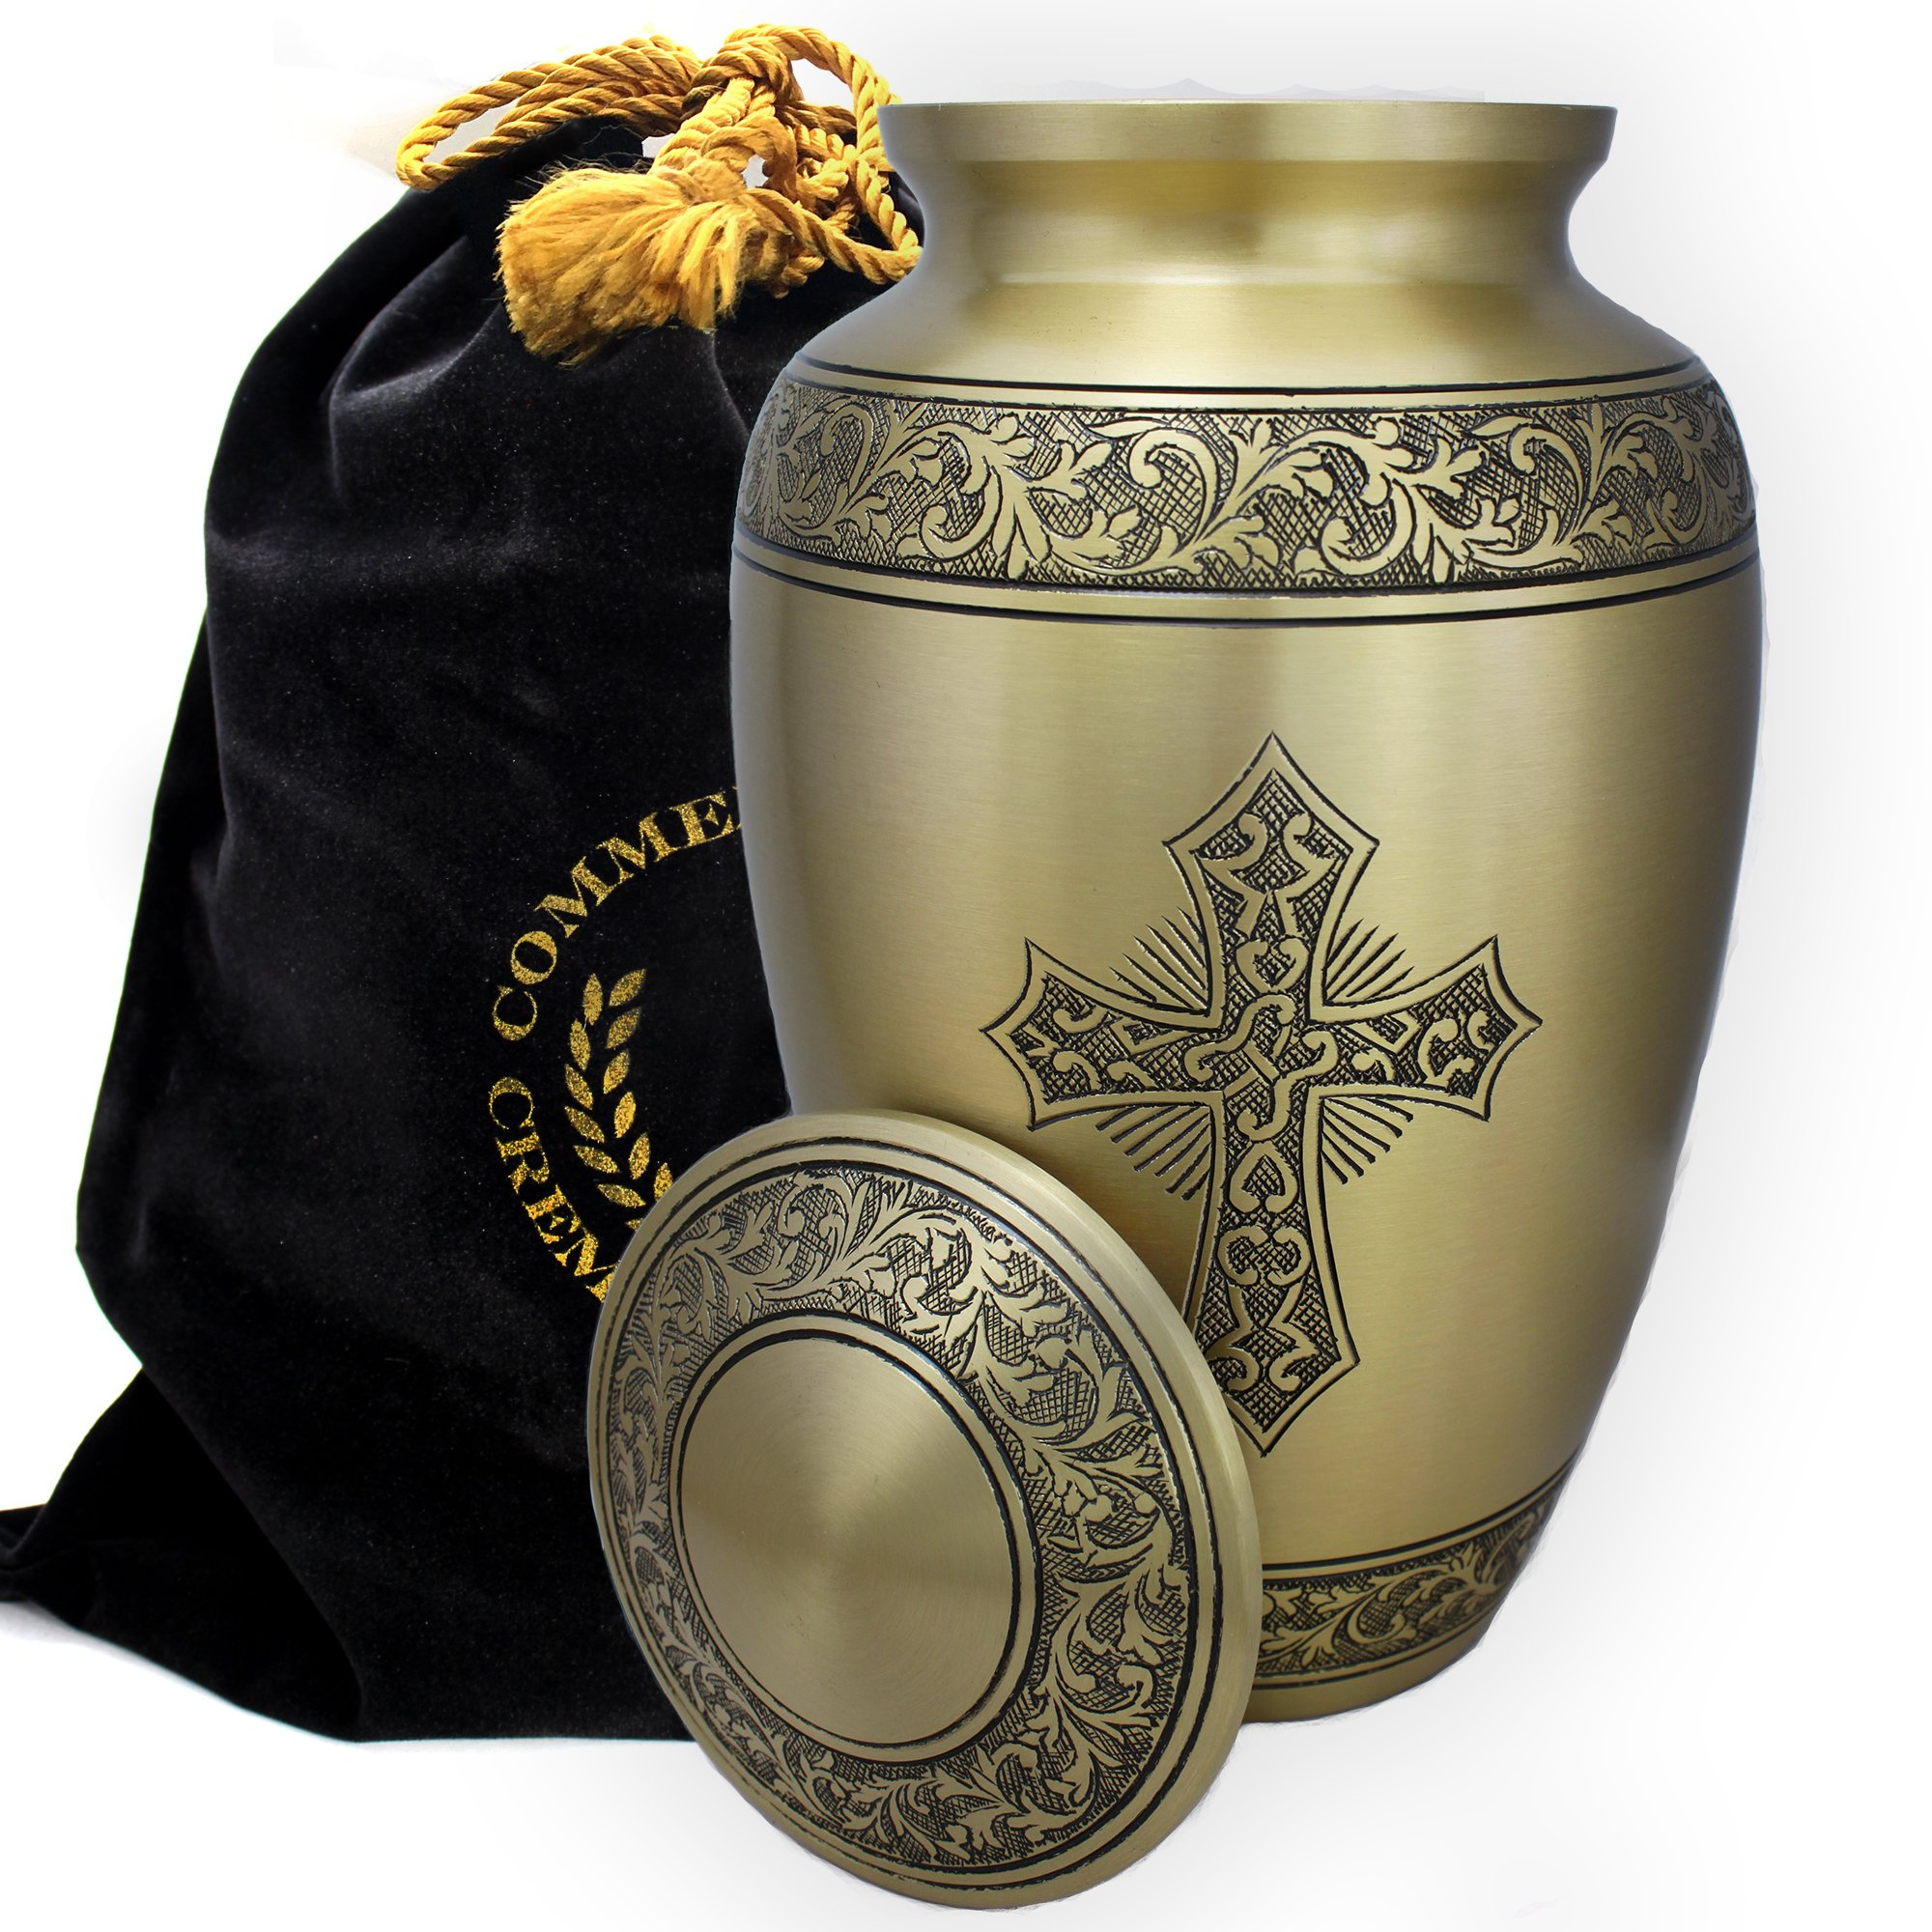 Love of Christ Gold Burial or Funeral Adult Cremation Urn for Human Ashes - Large, Adult by Commemorative Cremation Urns (Image #3)